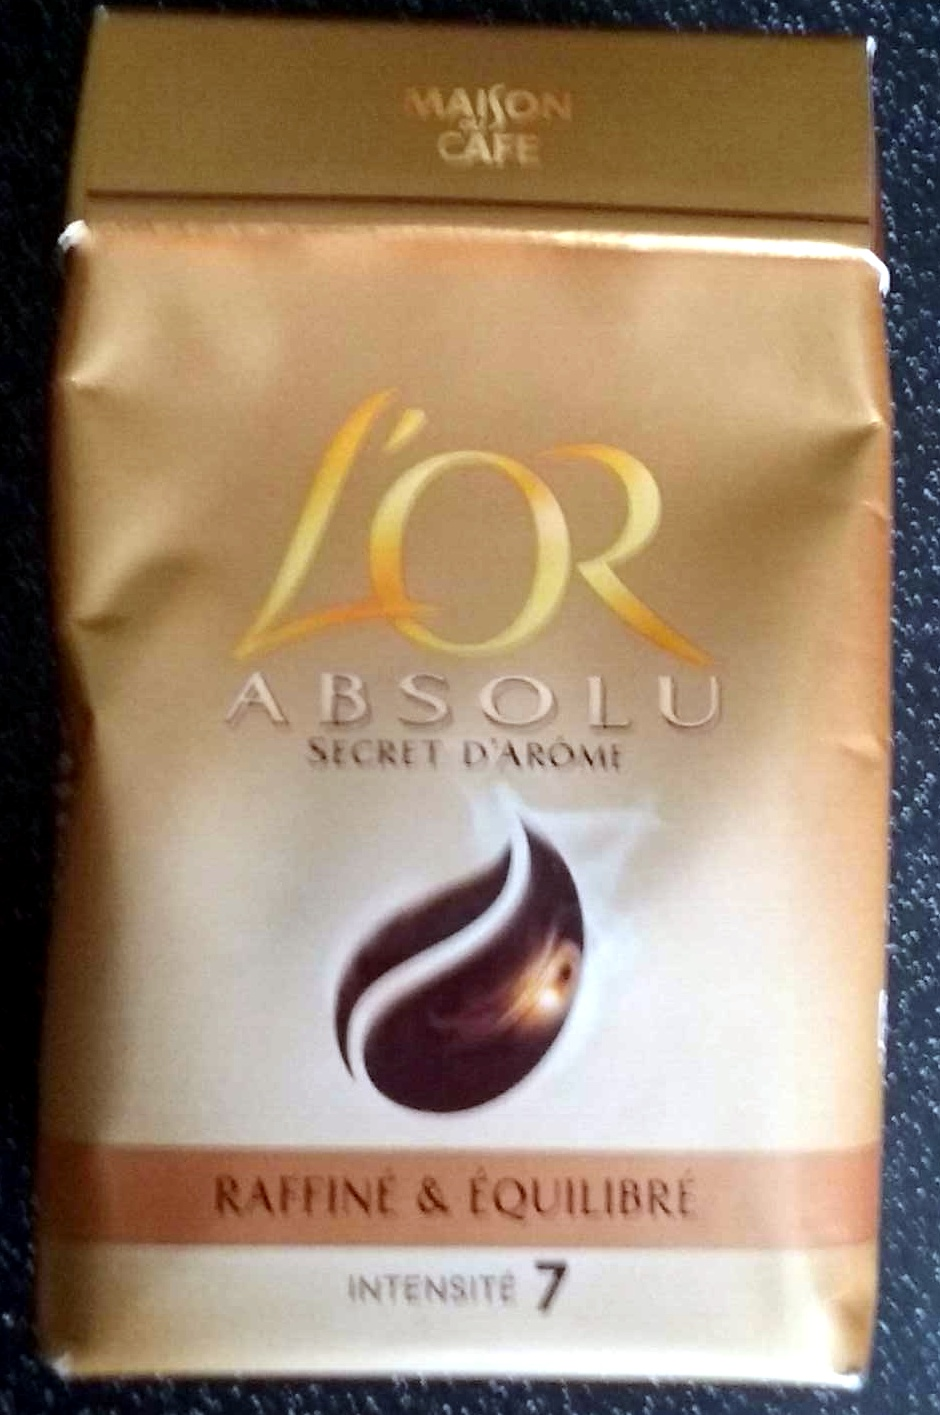 L'Or Absolu - Secret d'arôme - Product